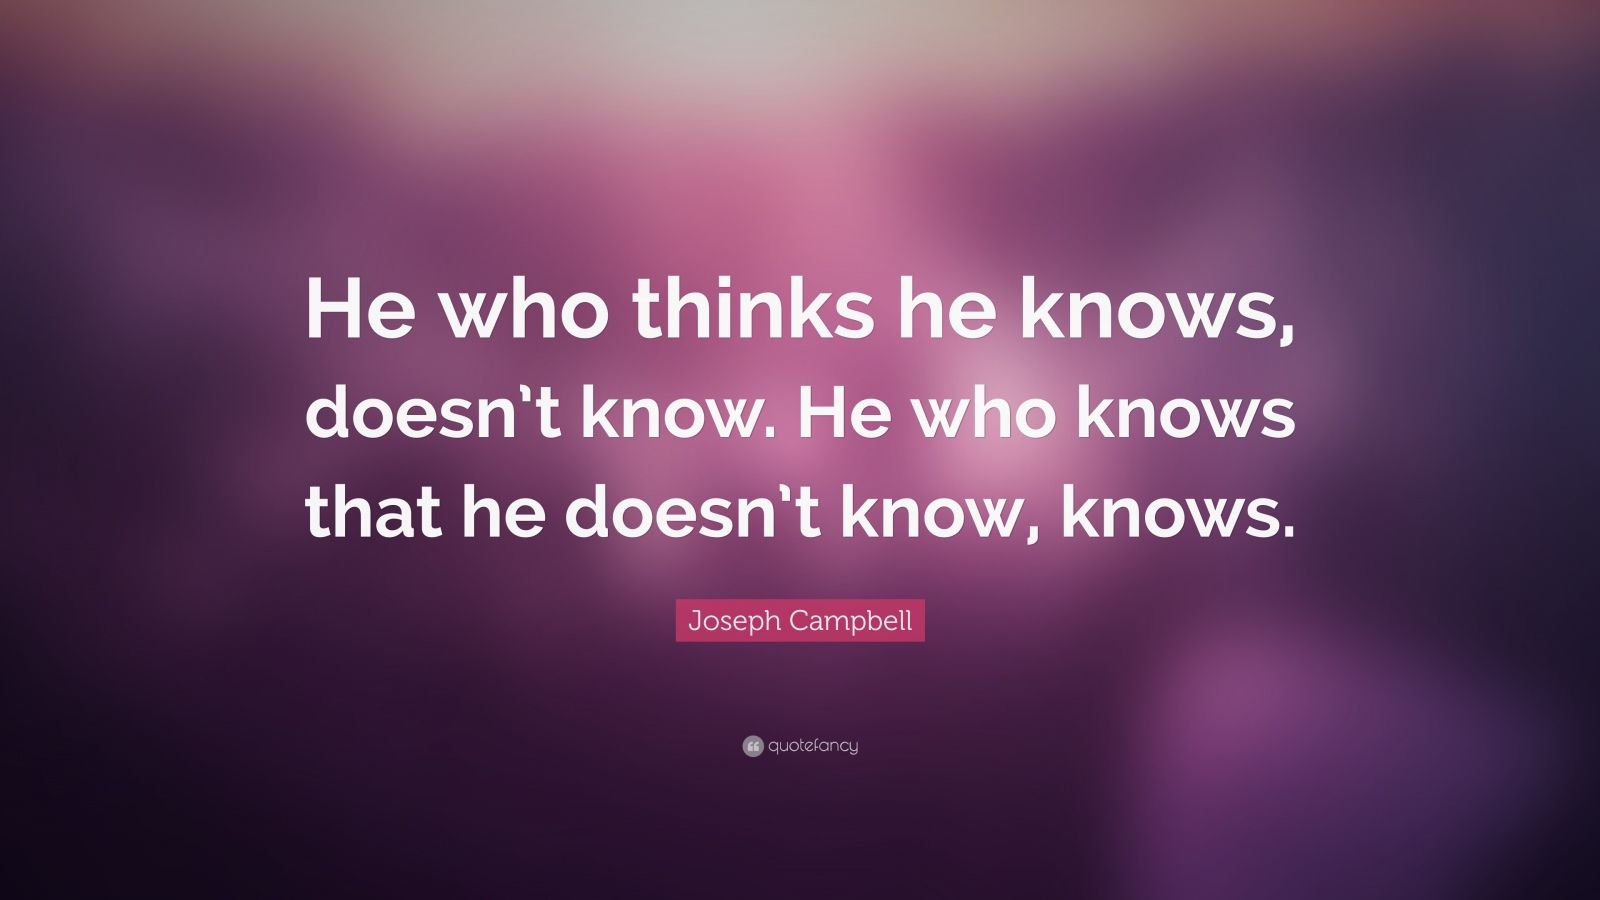 """Joseph Campbell Quote: """"He who thinks he knows, doesn't know. He who knows that he doesn't know, knows."""""""